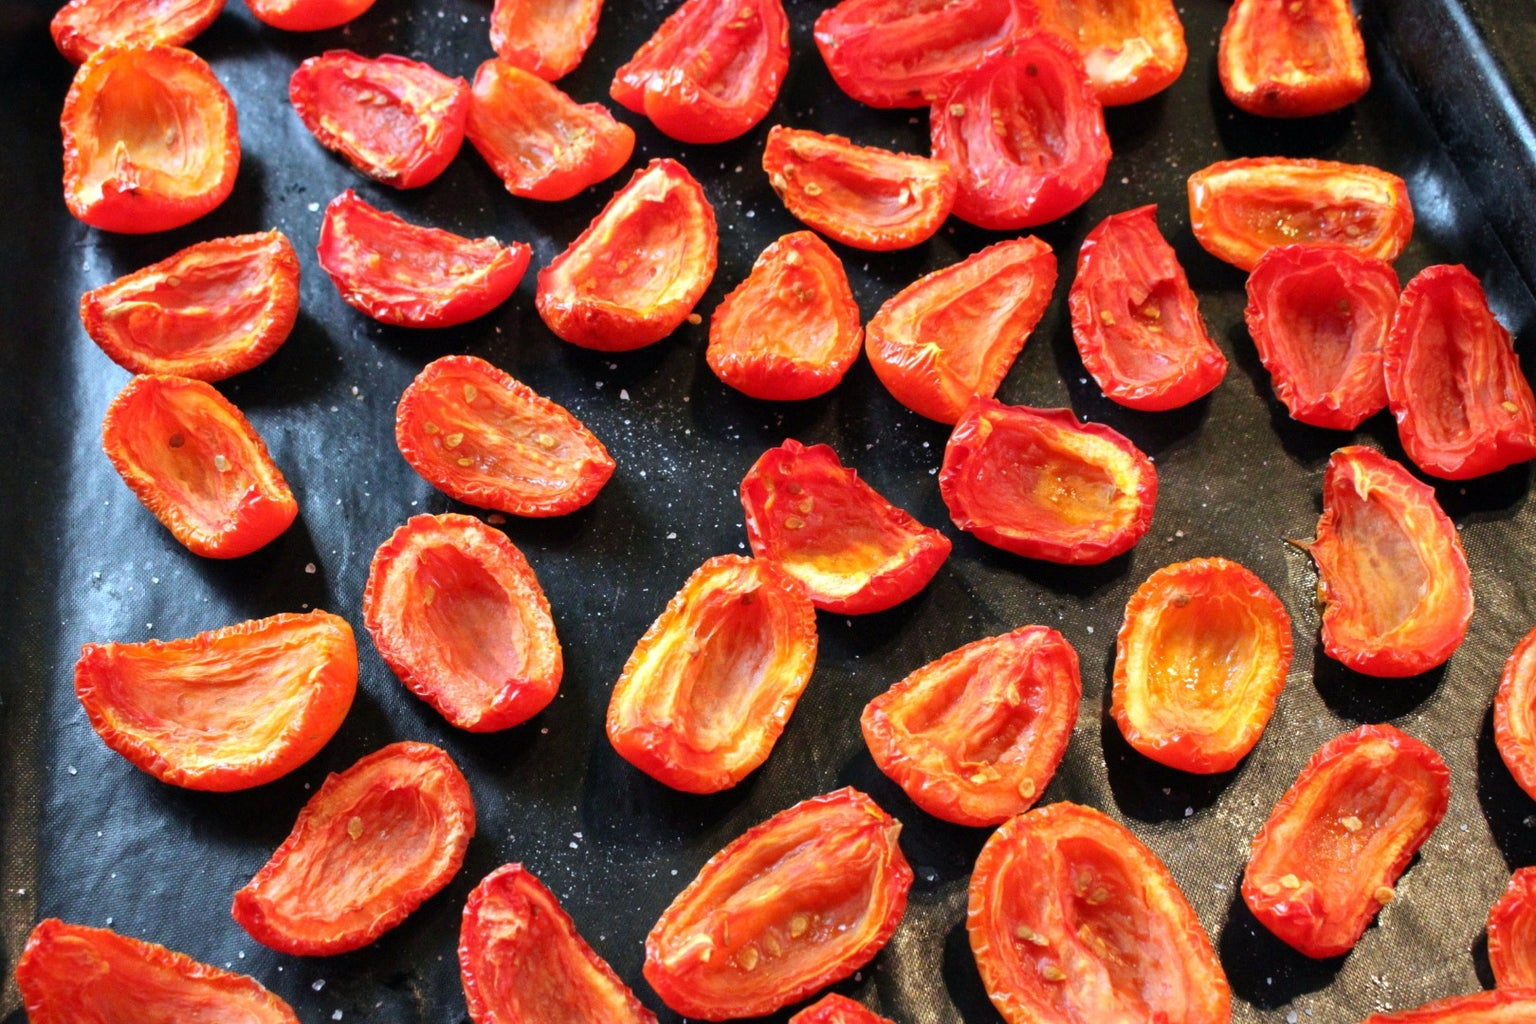 Drying the Tomatoes